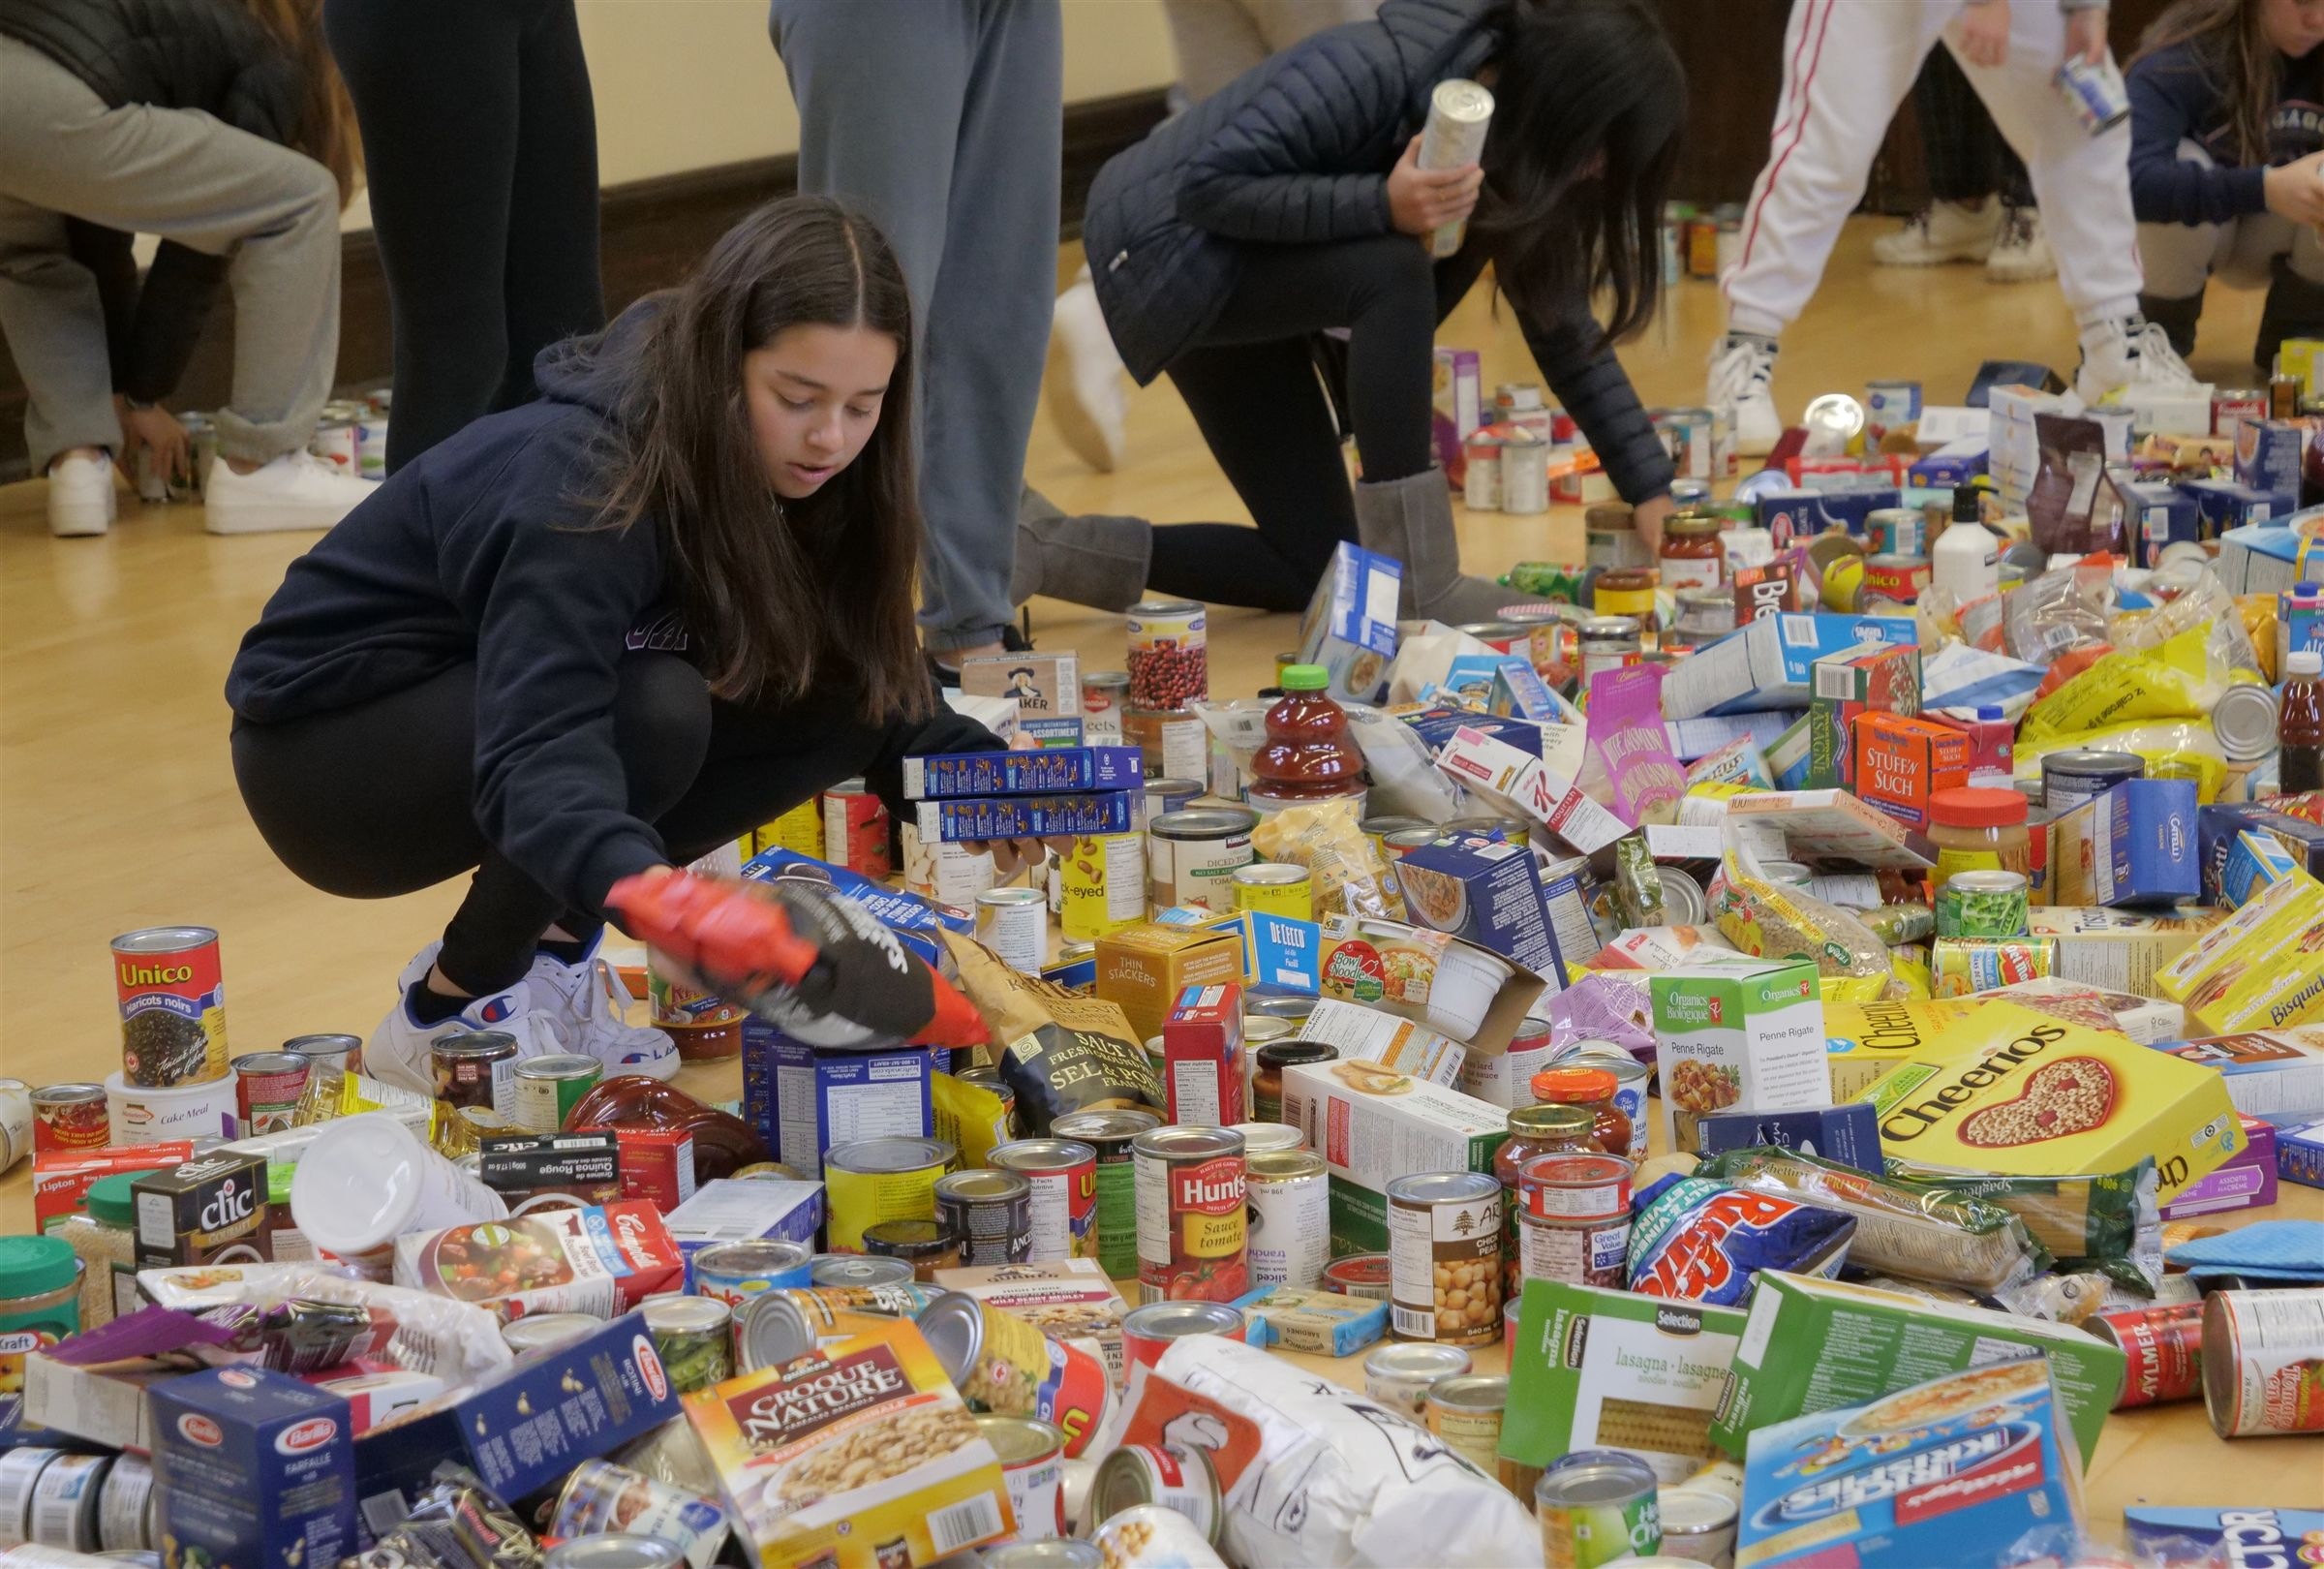 A student sorts through non-perishable food items that have been donated during a food drive